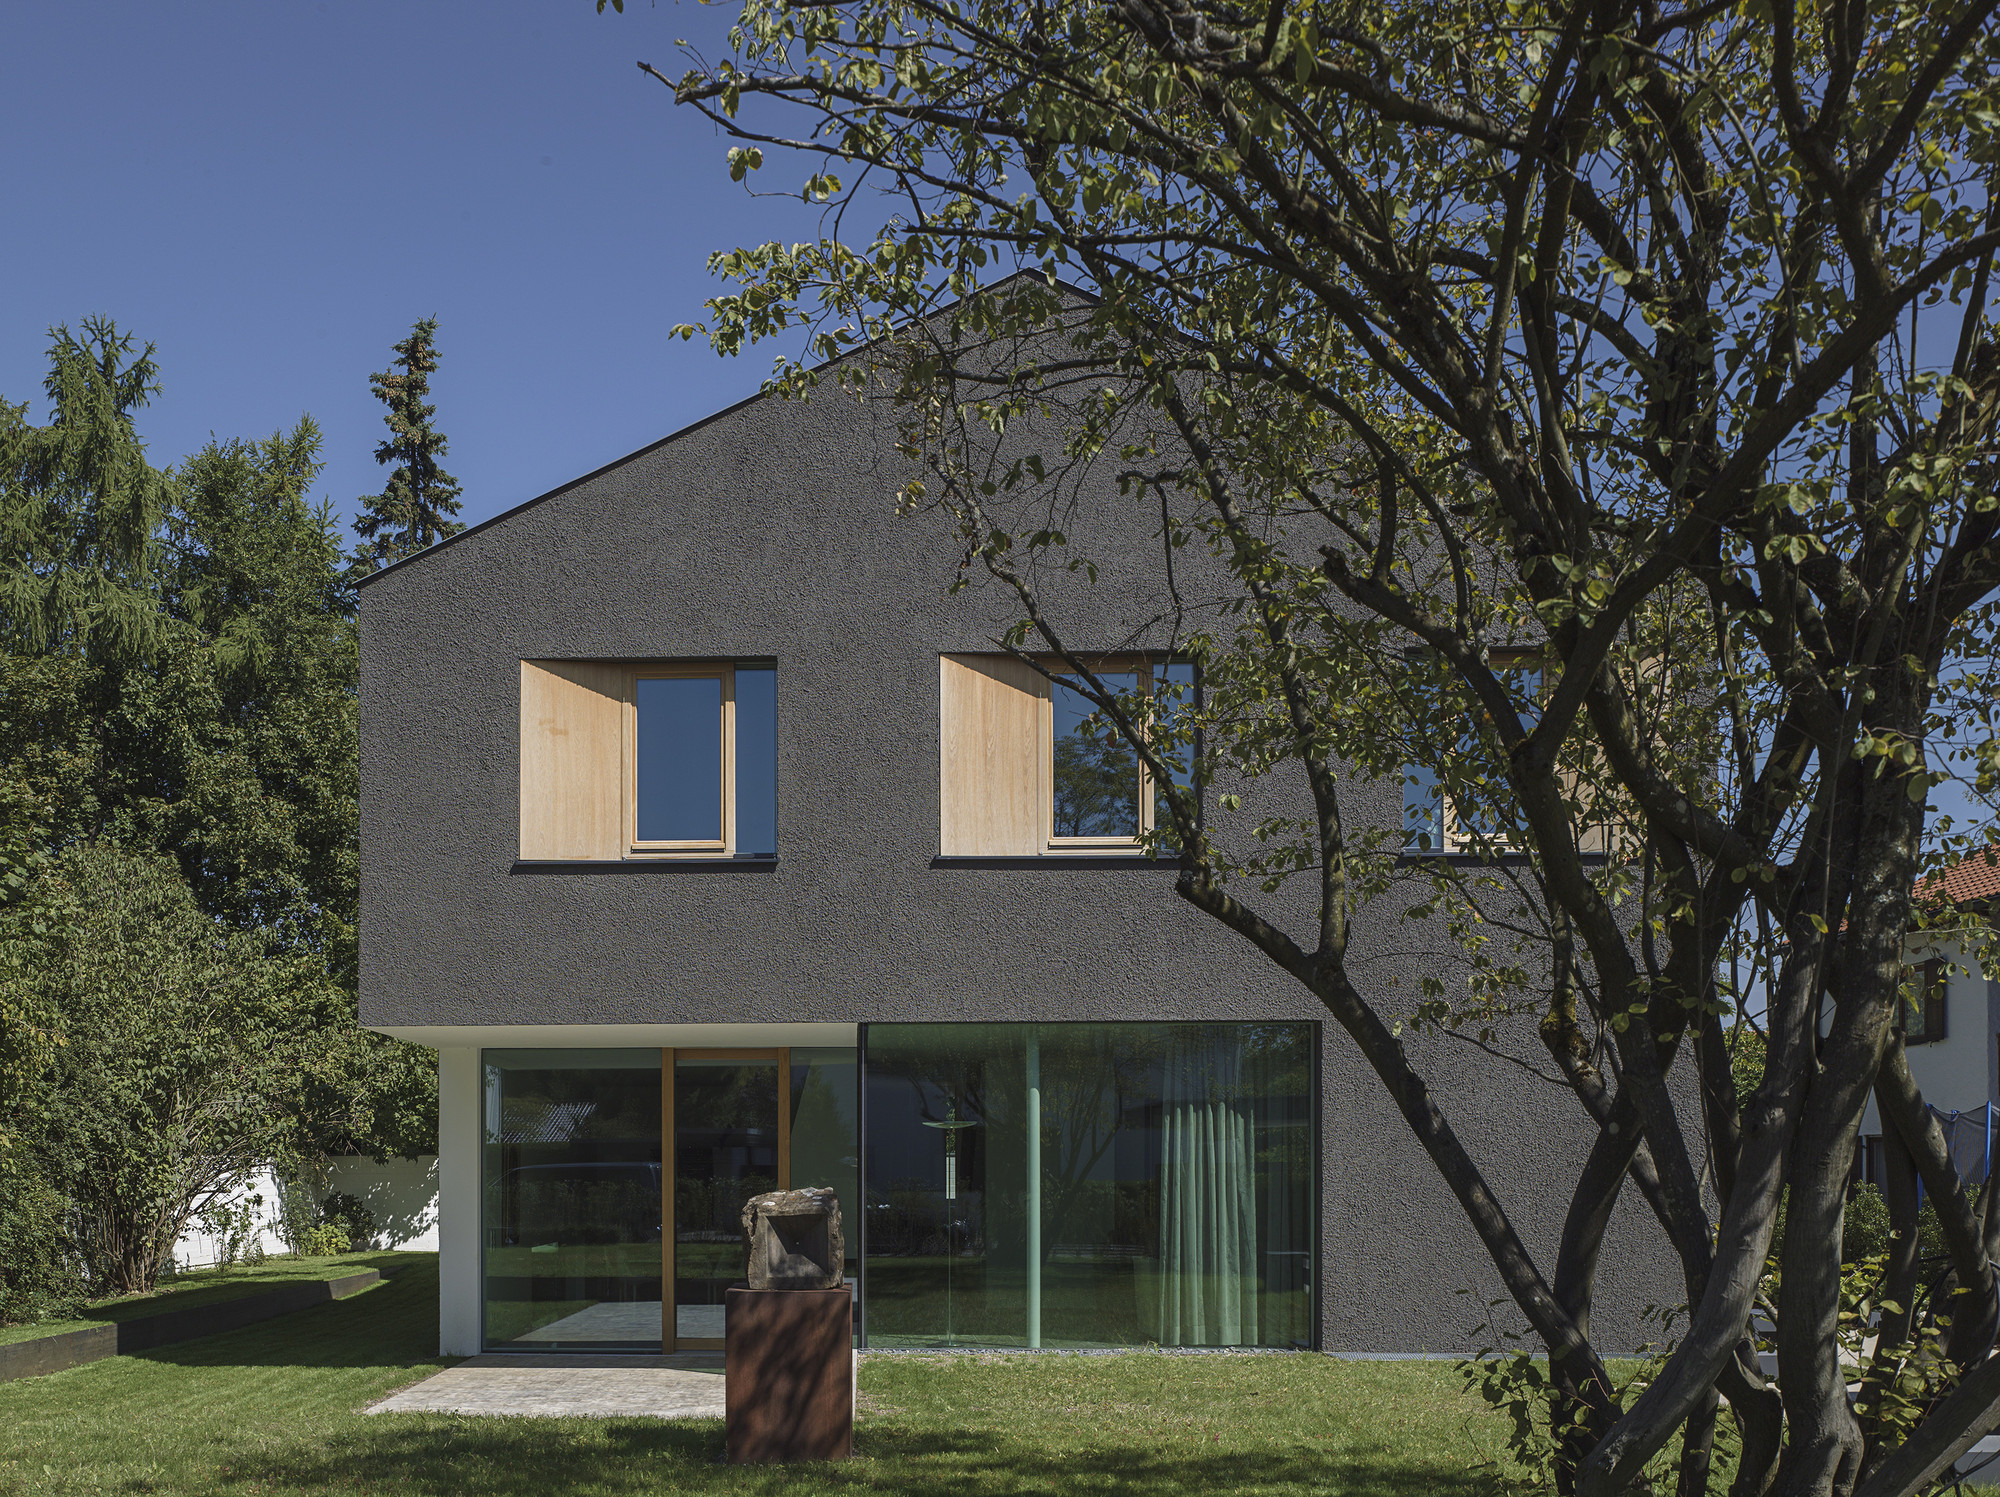 House Krailling / Unterlandstättner Architekten, Courtesy of Unterlandstättner Architekten